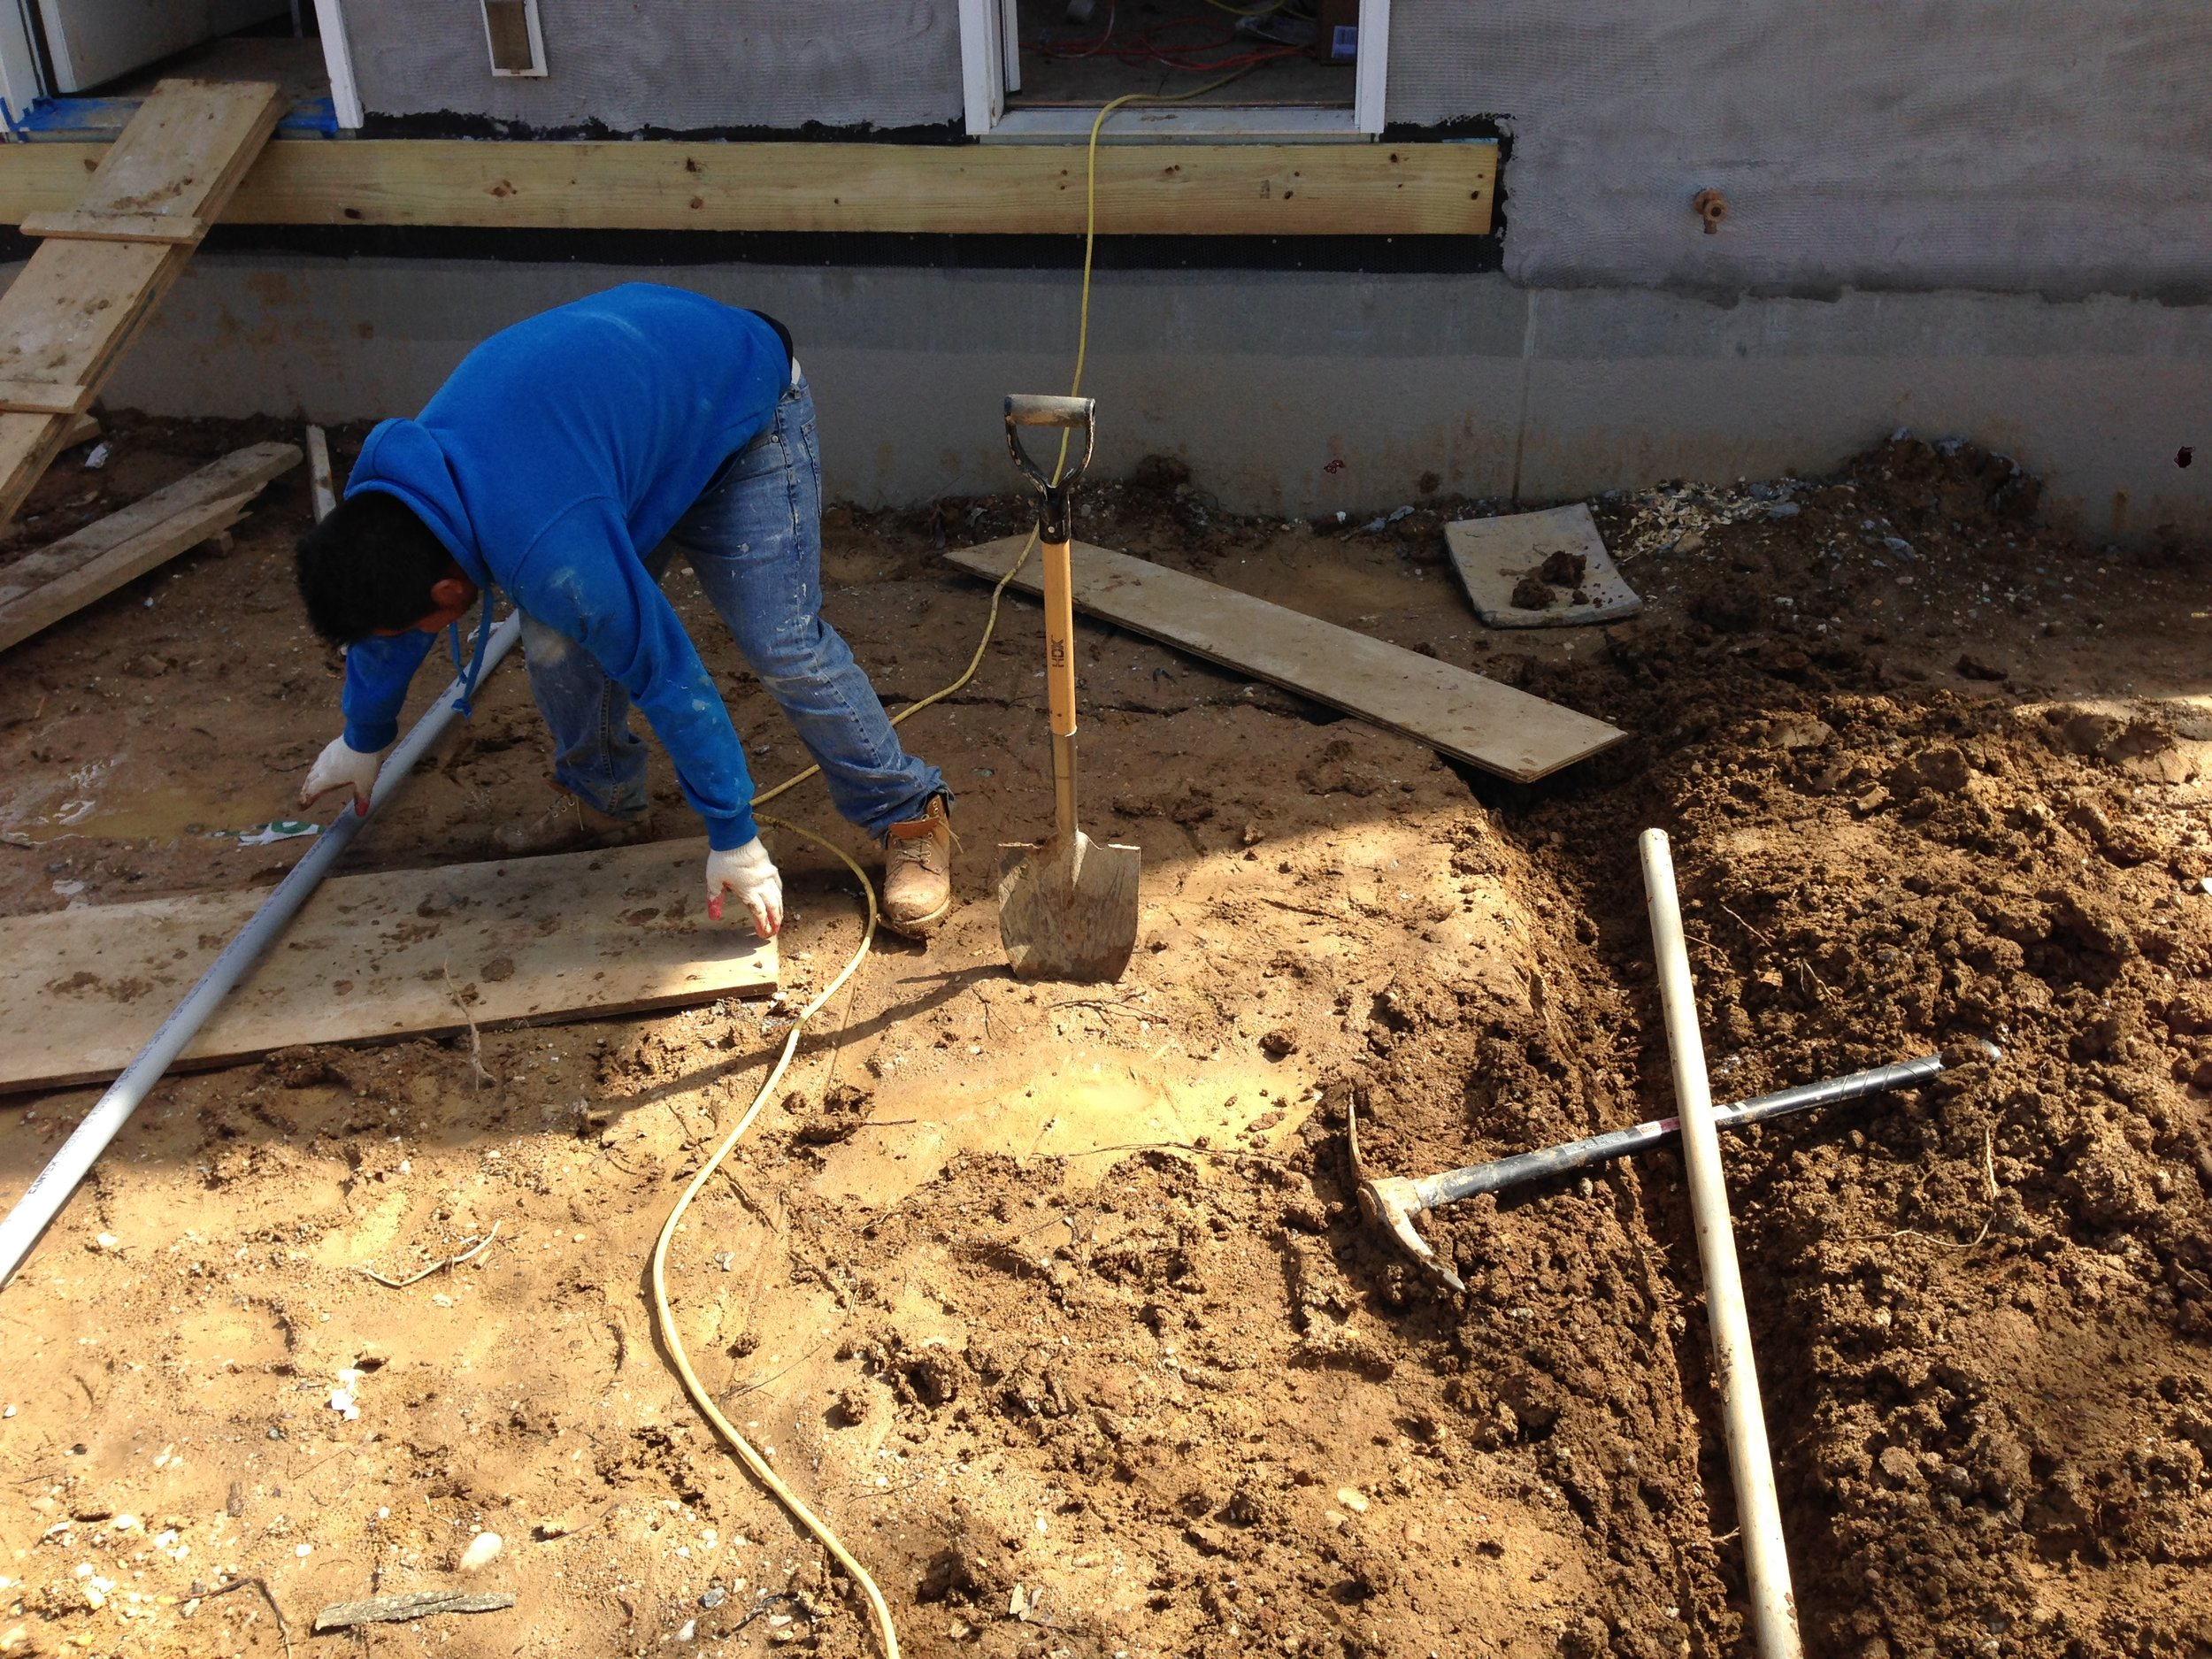 Installing the electric conduit to take the wiring from the house to the detached garage.